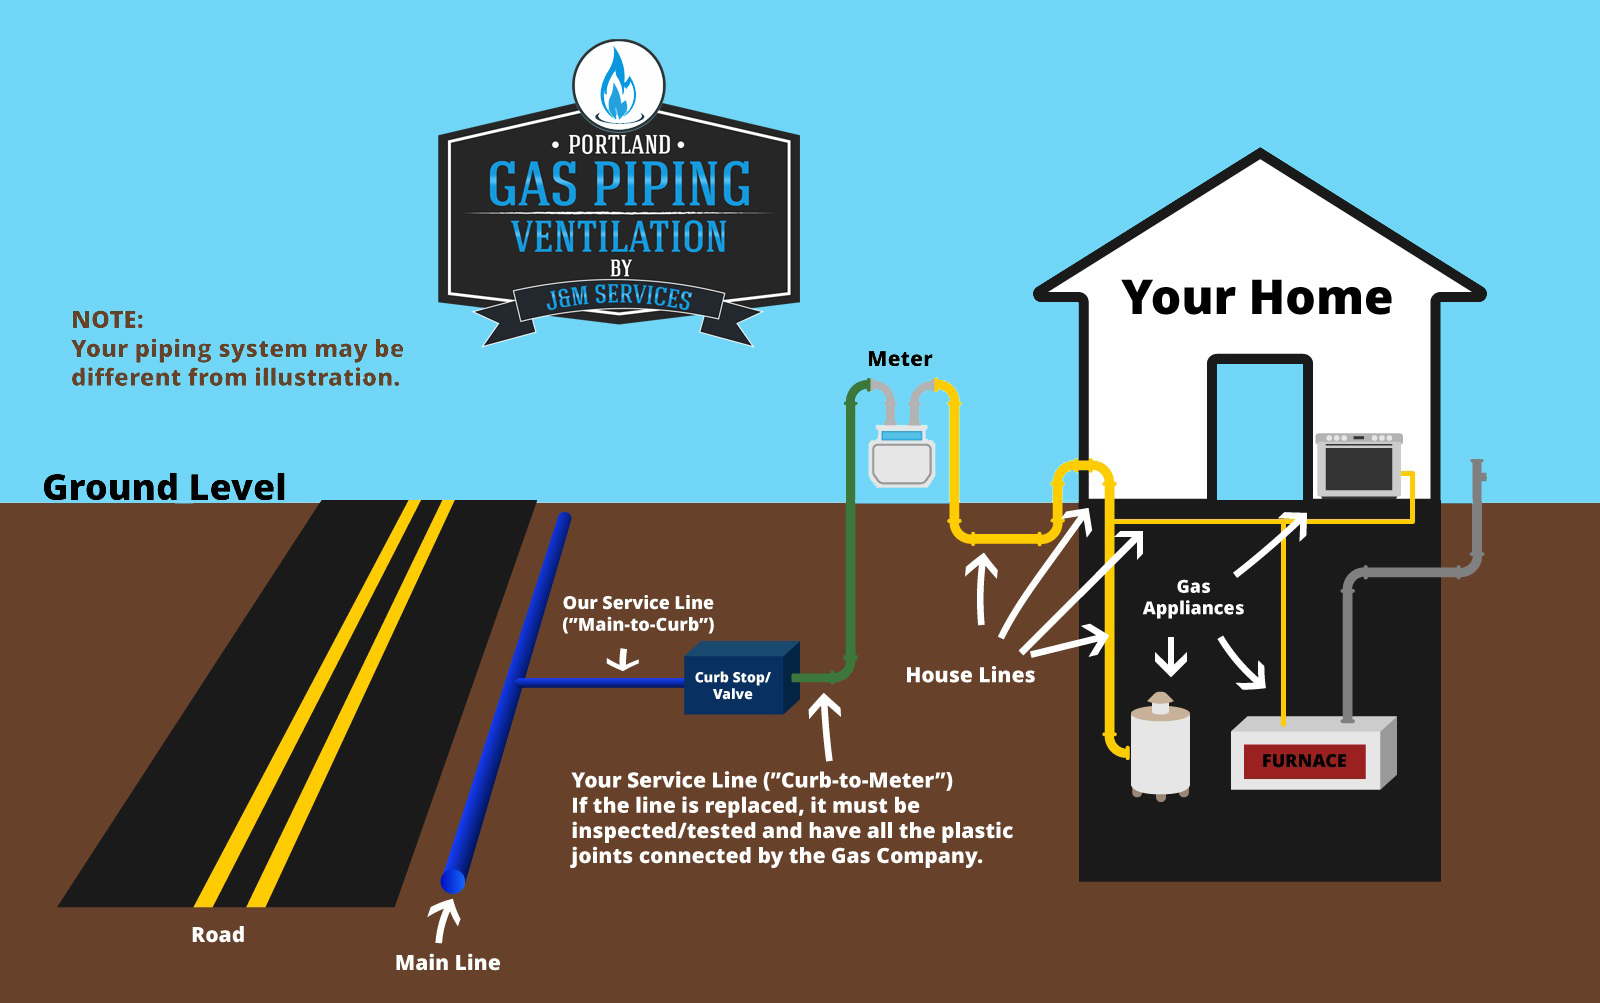 hight resolution of residential gas piping diagram northwest oregon portland or